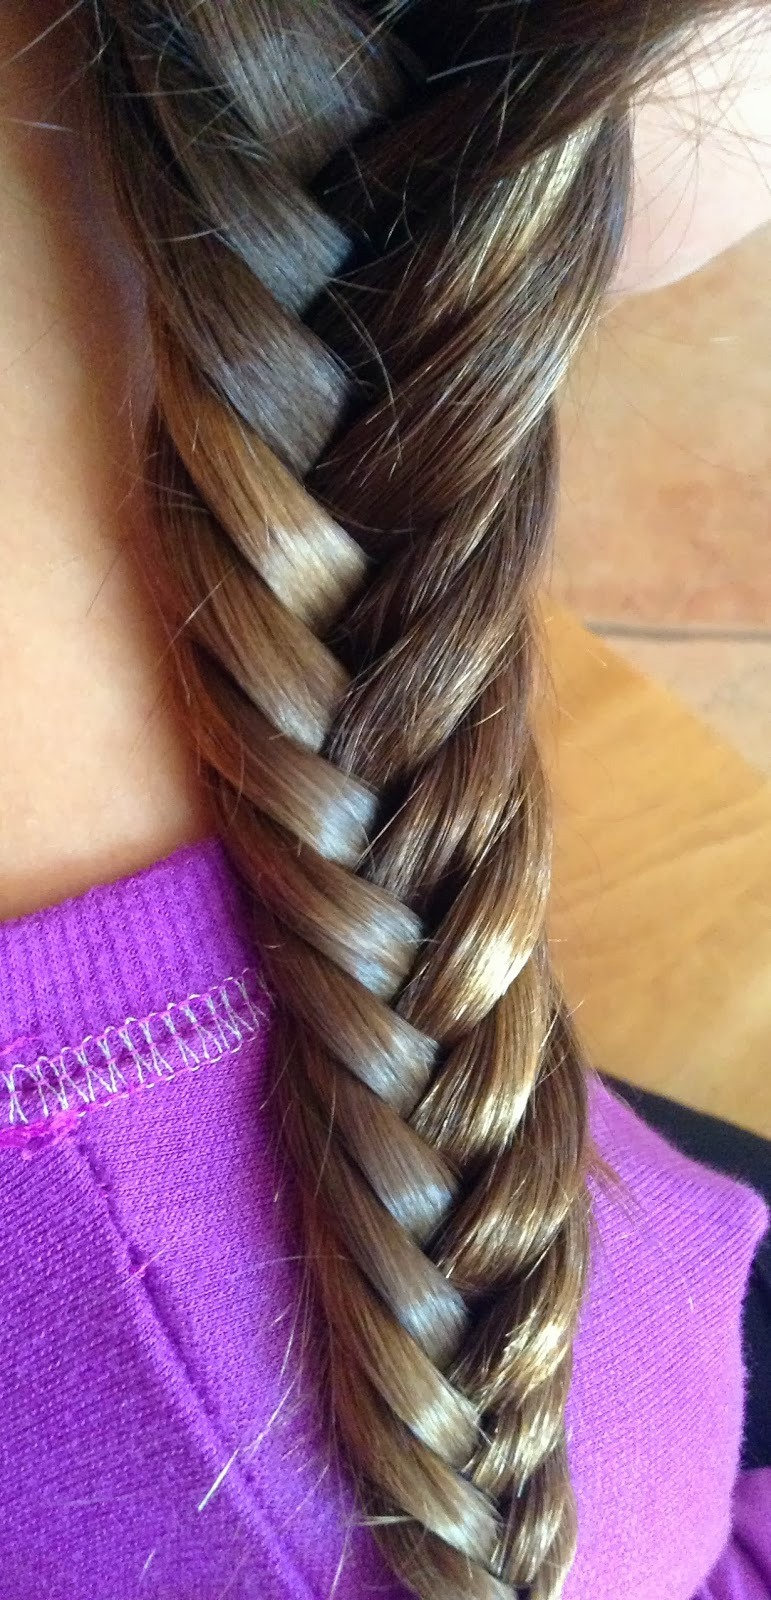 Put your hair into a fish tail and wait over night